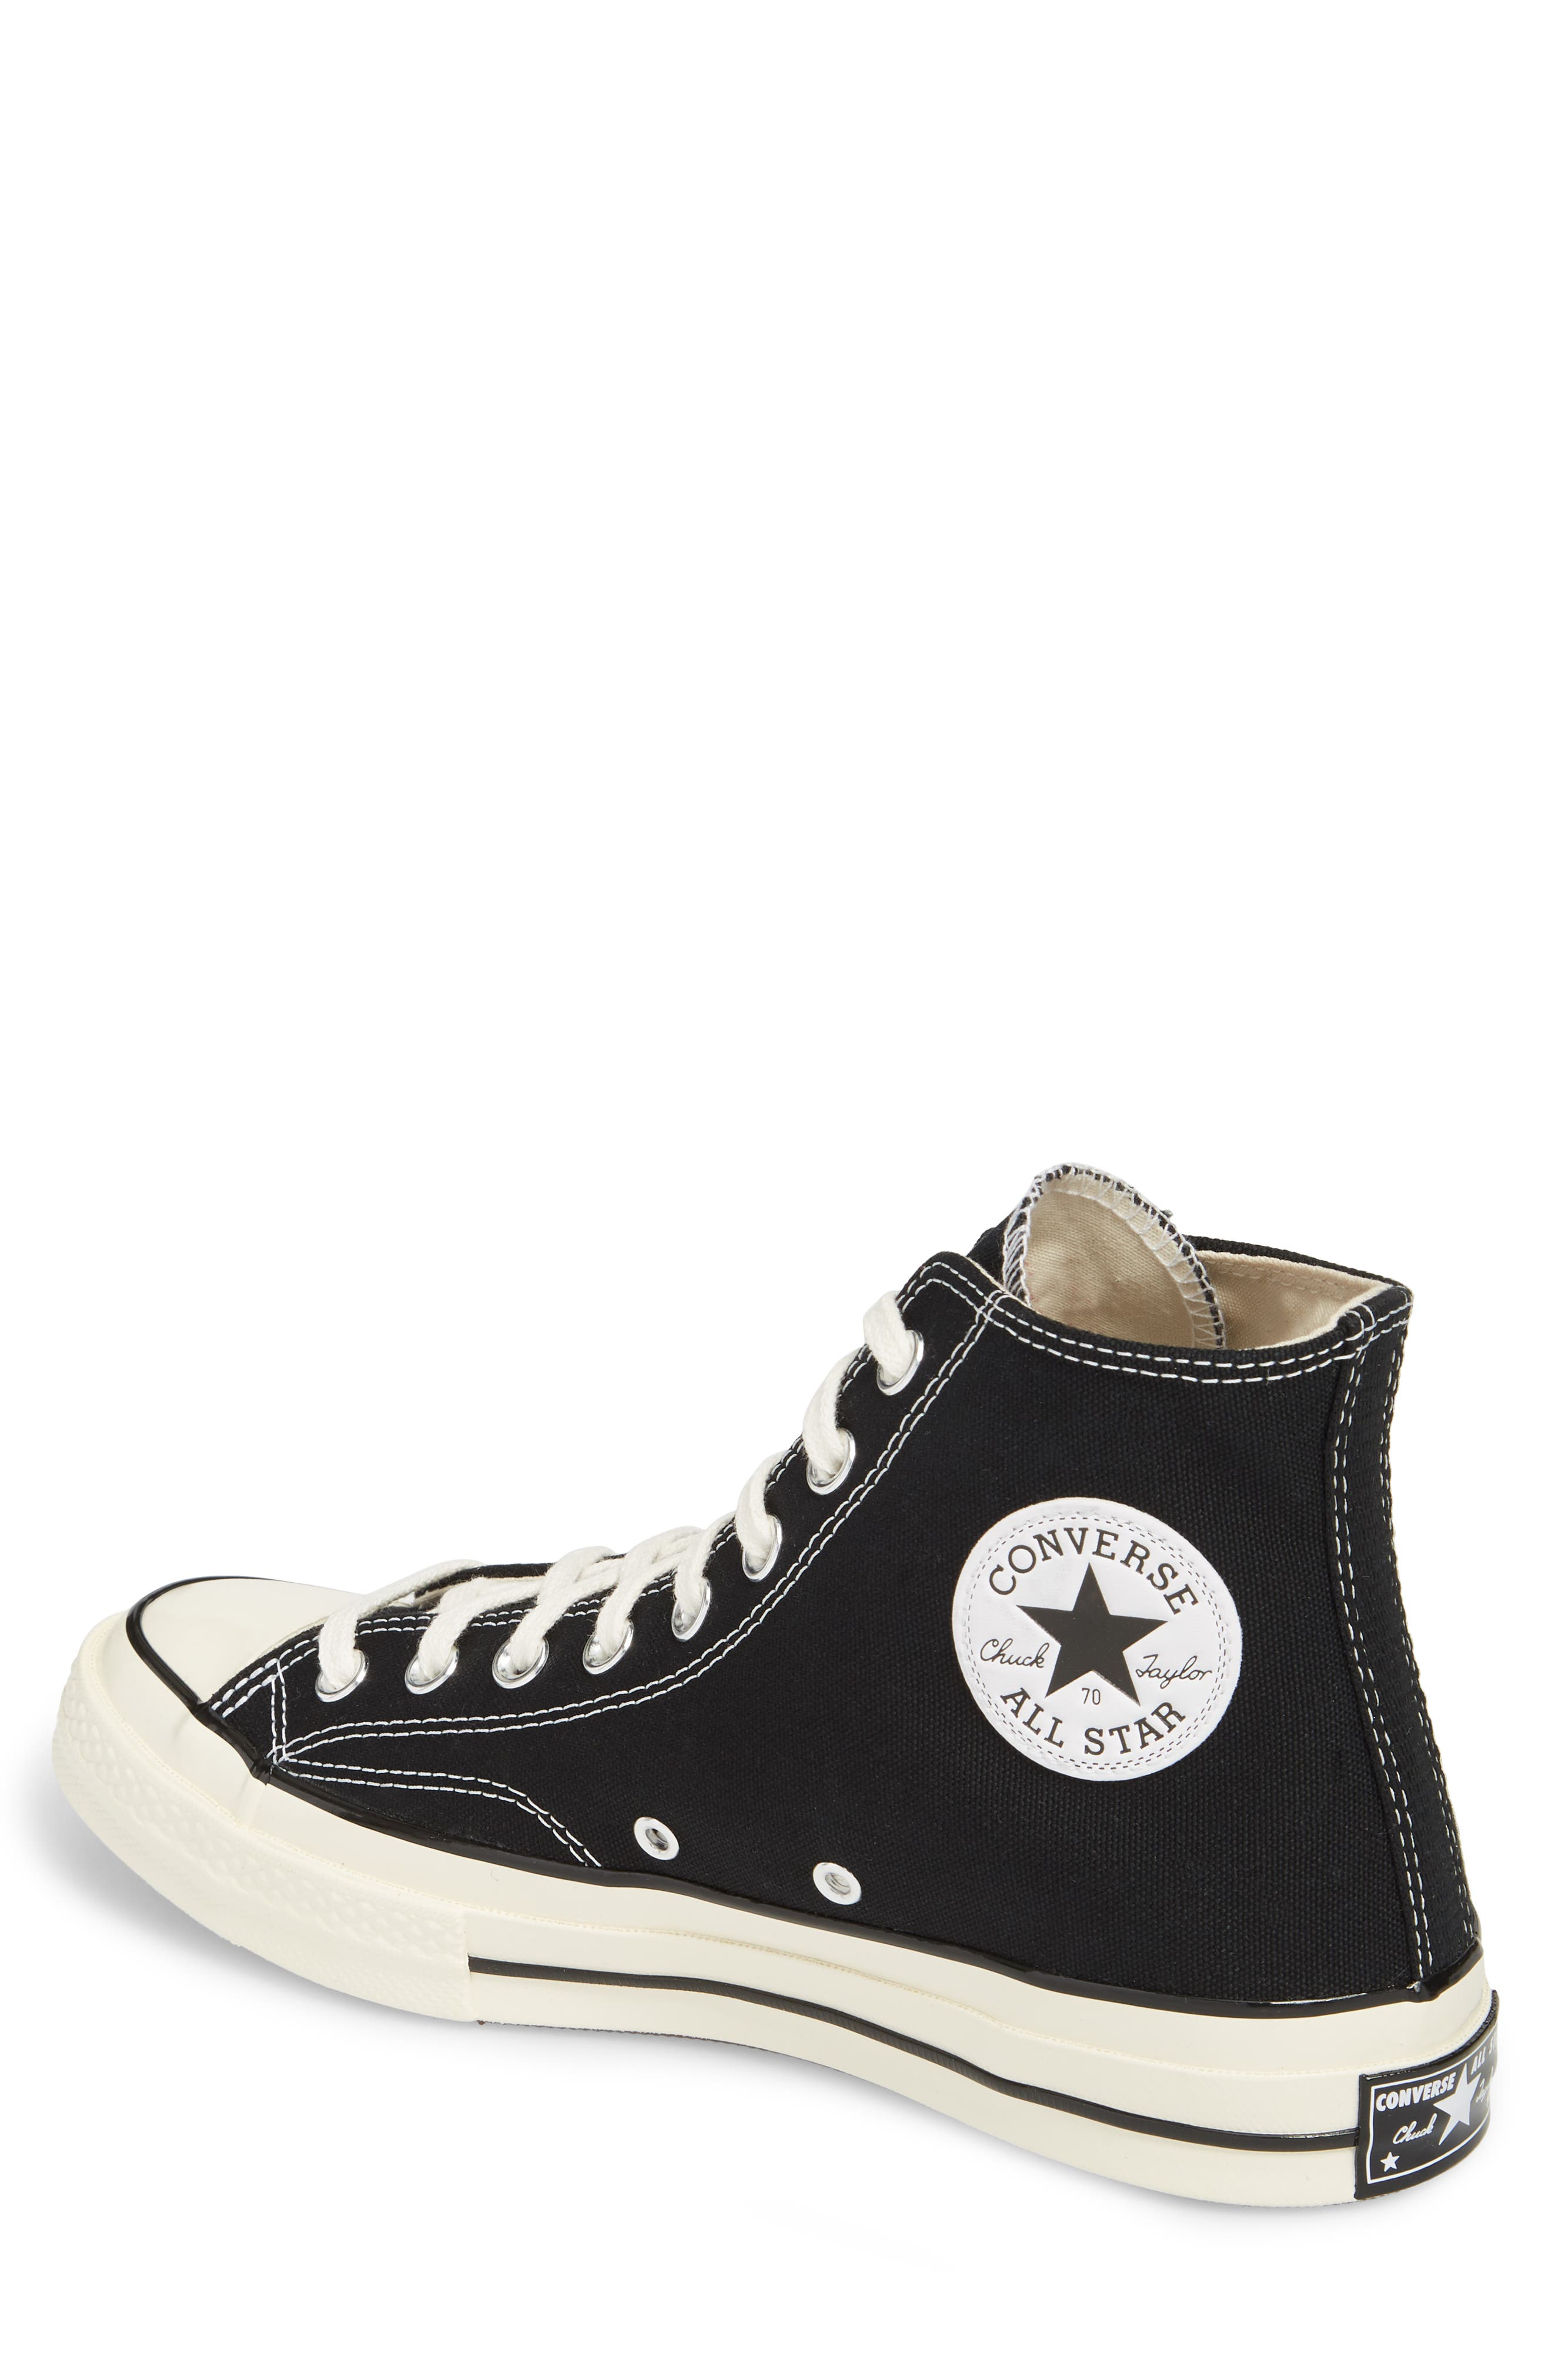 CONVERSE, Chuck Taylor<sup>®</sup> All Star<sup>®</sup> 70 High Top Sneaker, Alternate thumbnail 2, color, BLACK